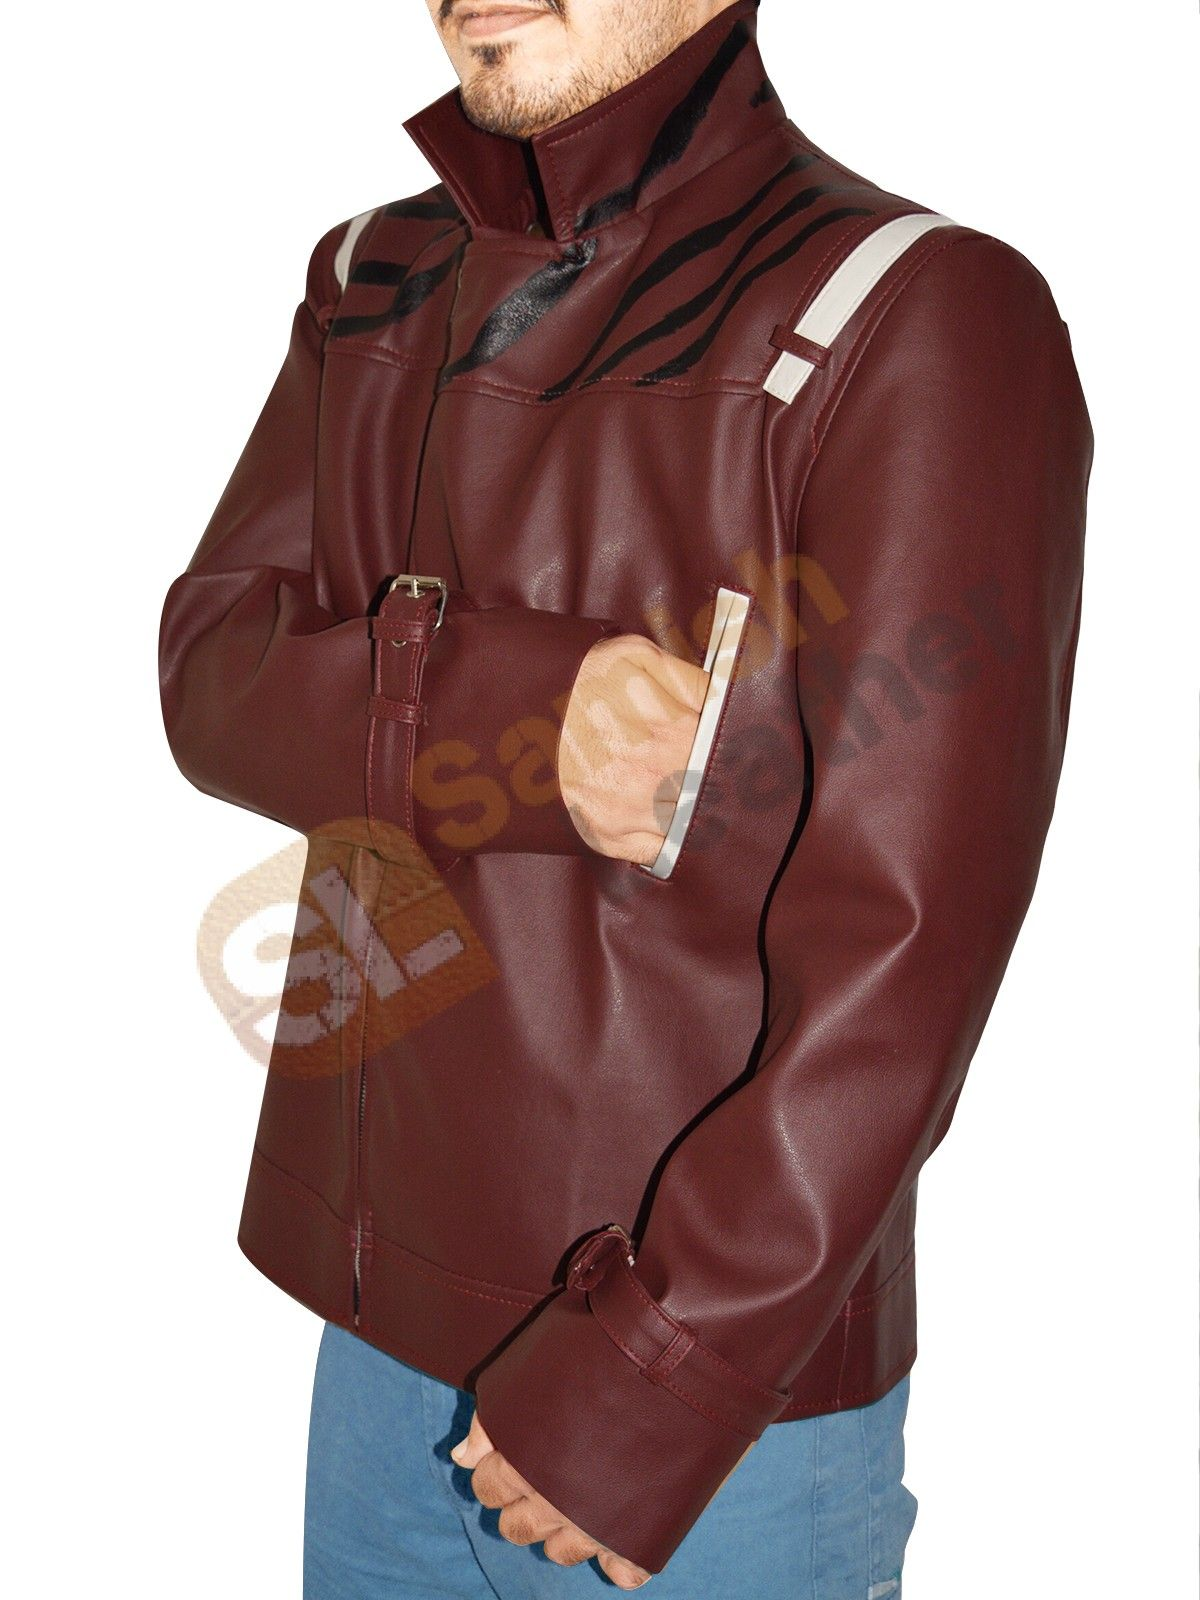 No More Heroes Leather Jacket Biker Outfits Jackets